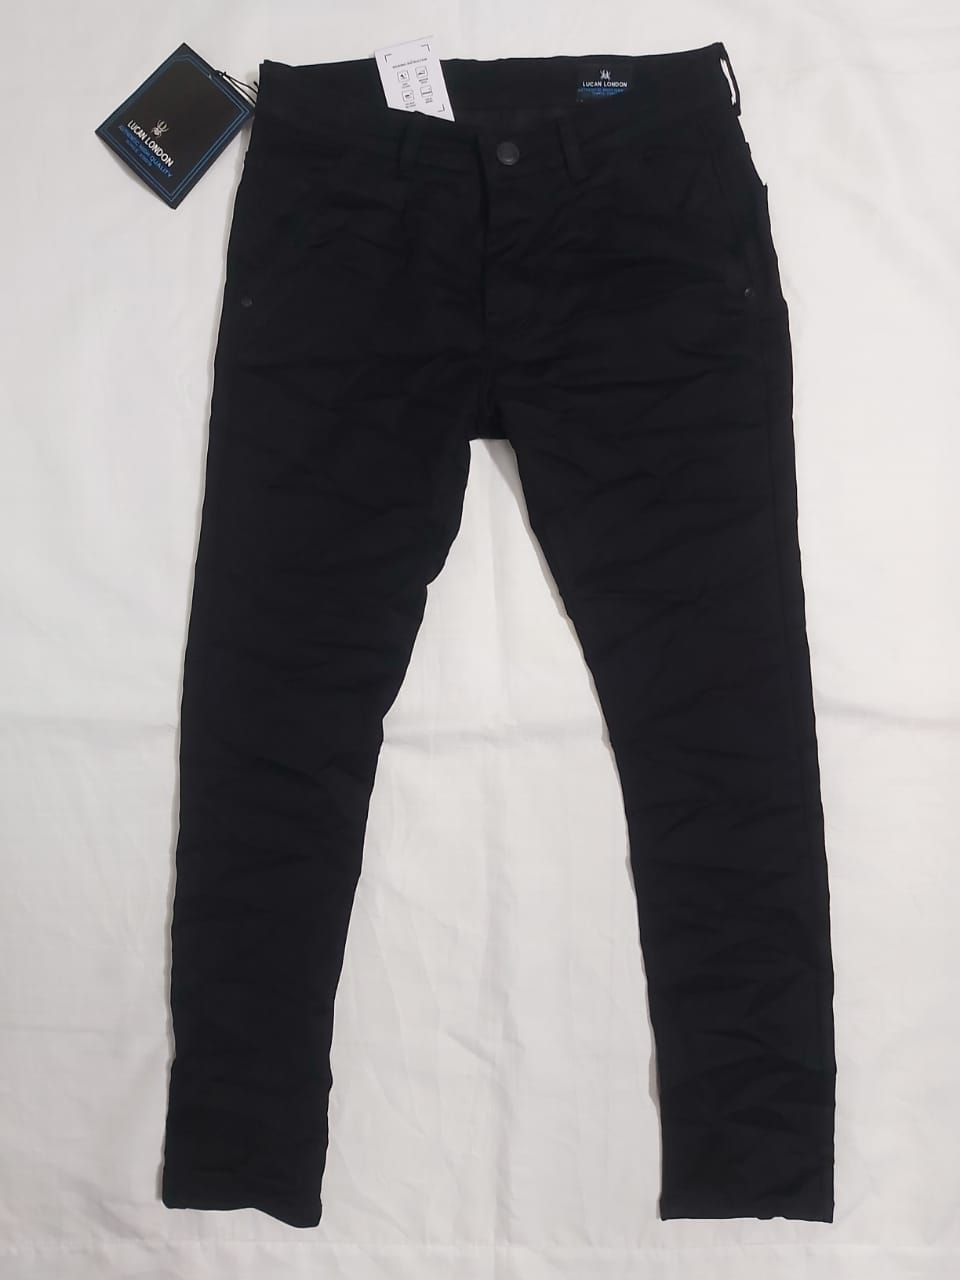 LUCAN LONDON LLJ01 HEAVY STYLISH BLACK COLOR POLO FIT JEANS FOR MEN'S (28)